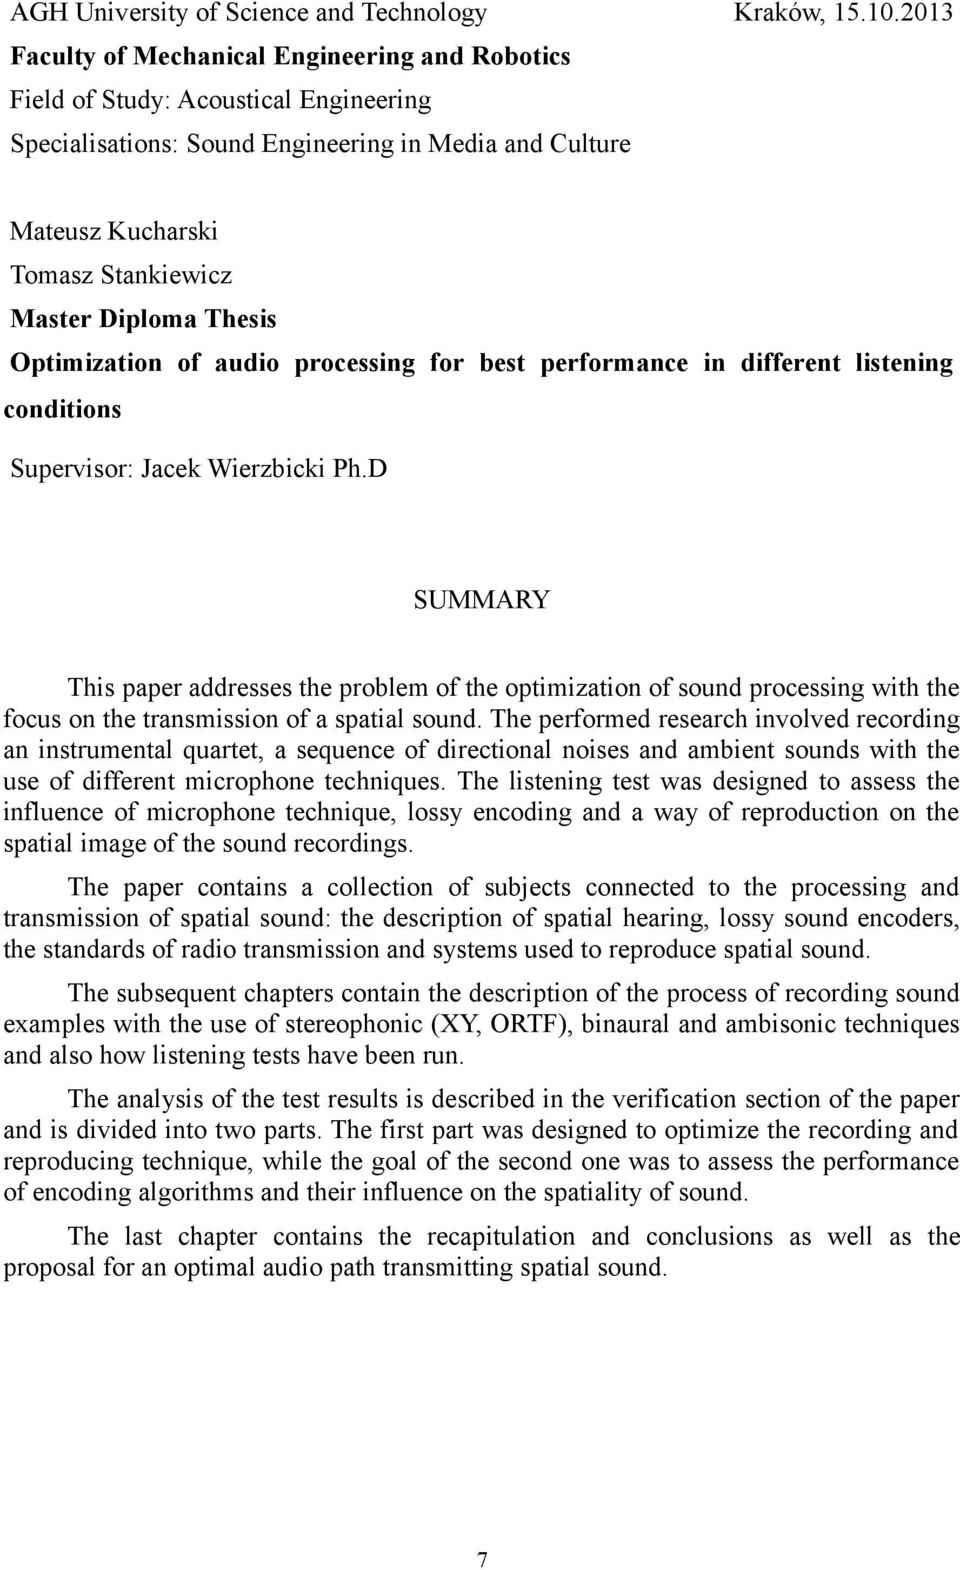 Thesis Optimization of audio processing for best performance in different listening conditions Supervisor: Jacek Wierzbicki Ph.